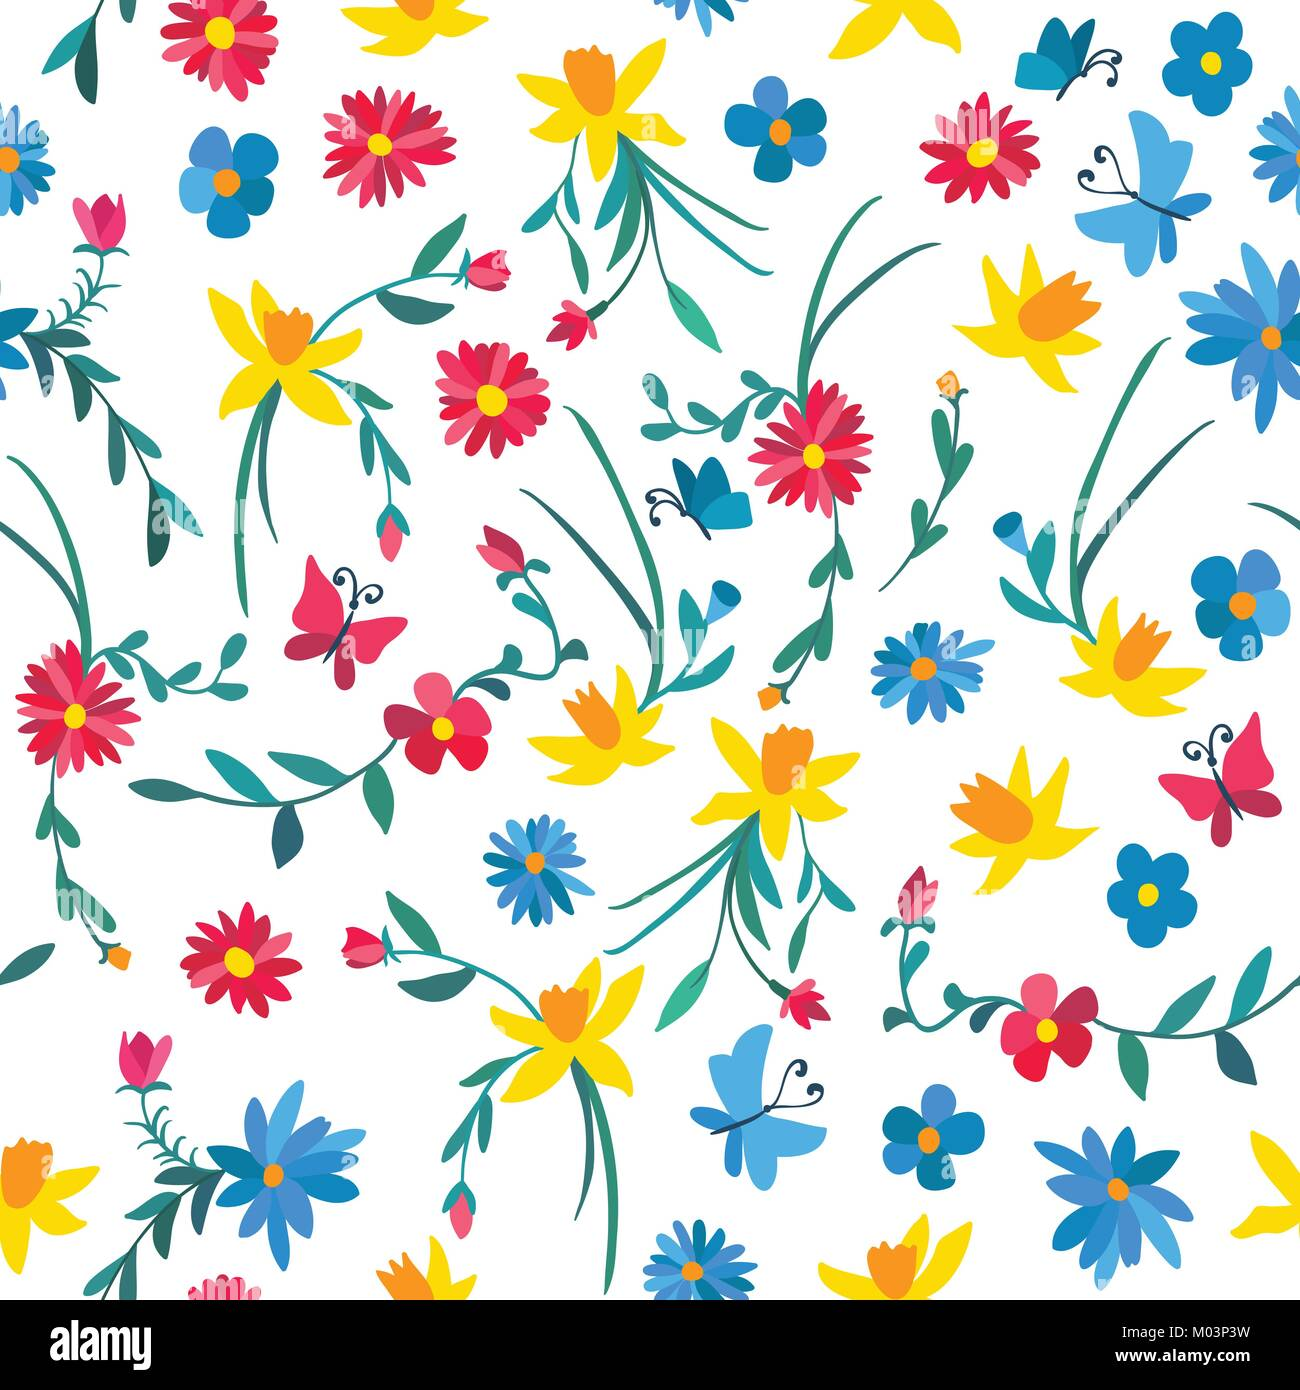 Seamless Floral Pattern With Colorful Flowers And Butterflies